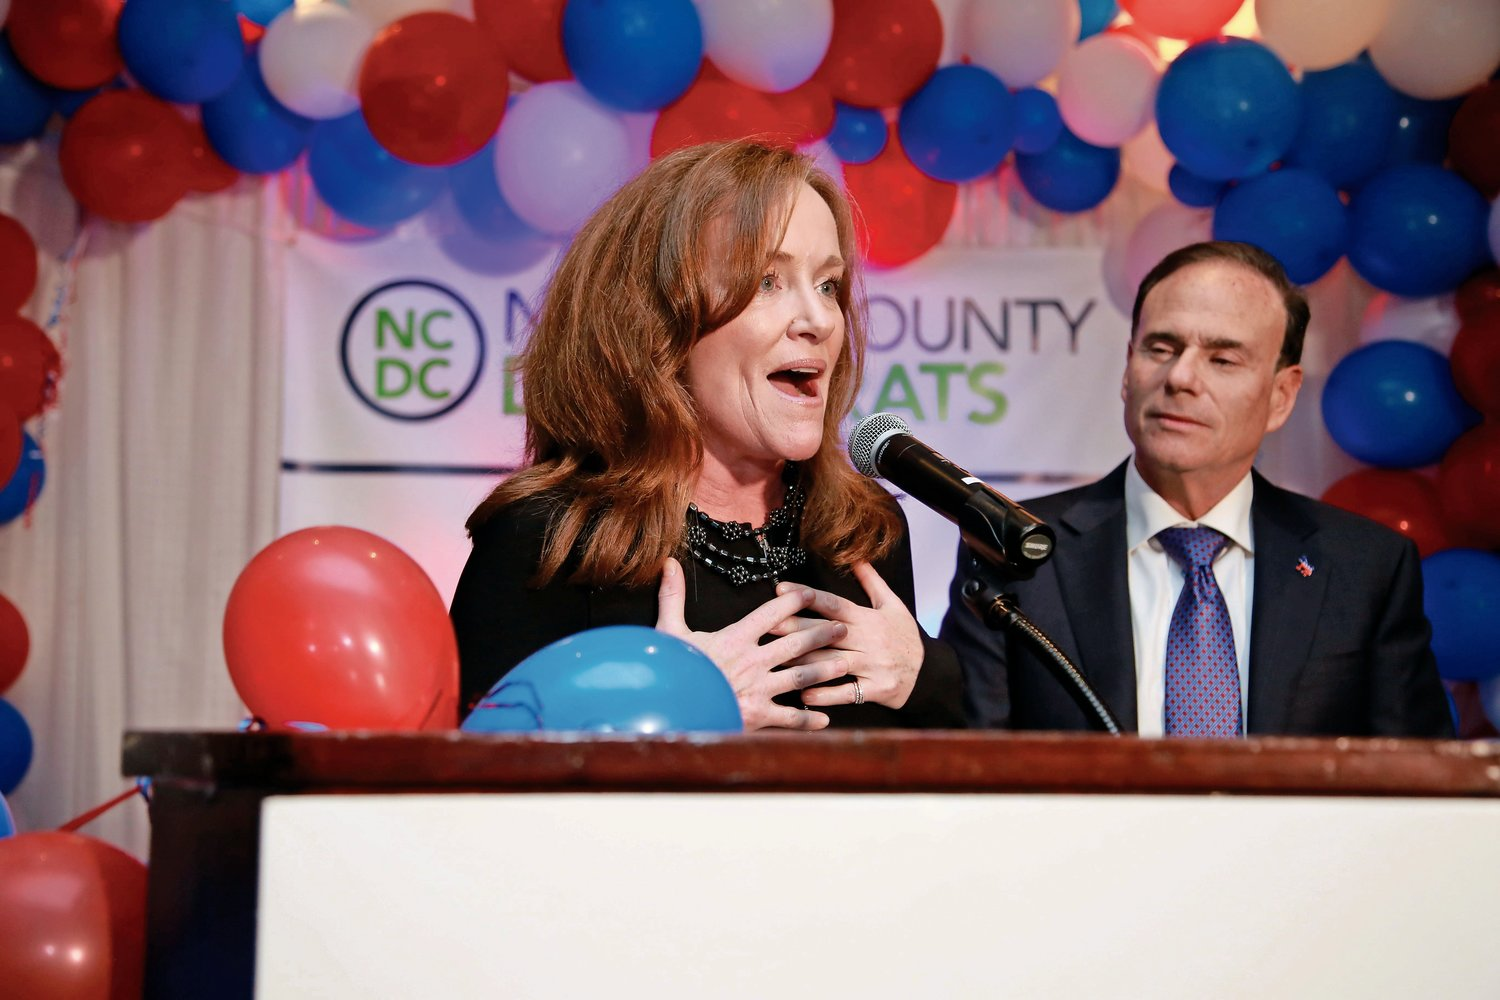 Incumbent Democratic Rep. Kathleen Rice declared victory early in the evening on Tuesday in her 4th Congressional District race against Republican Ameer Benno.